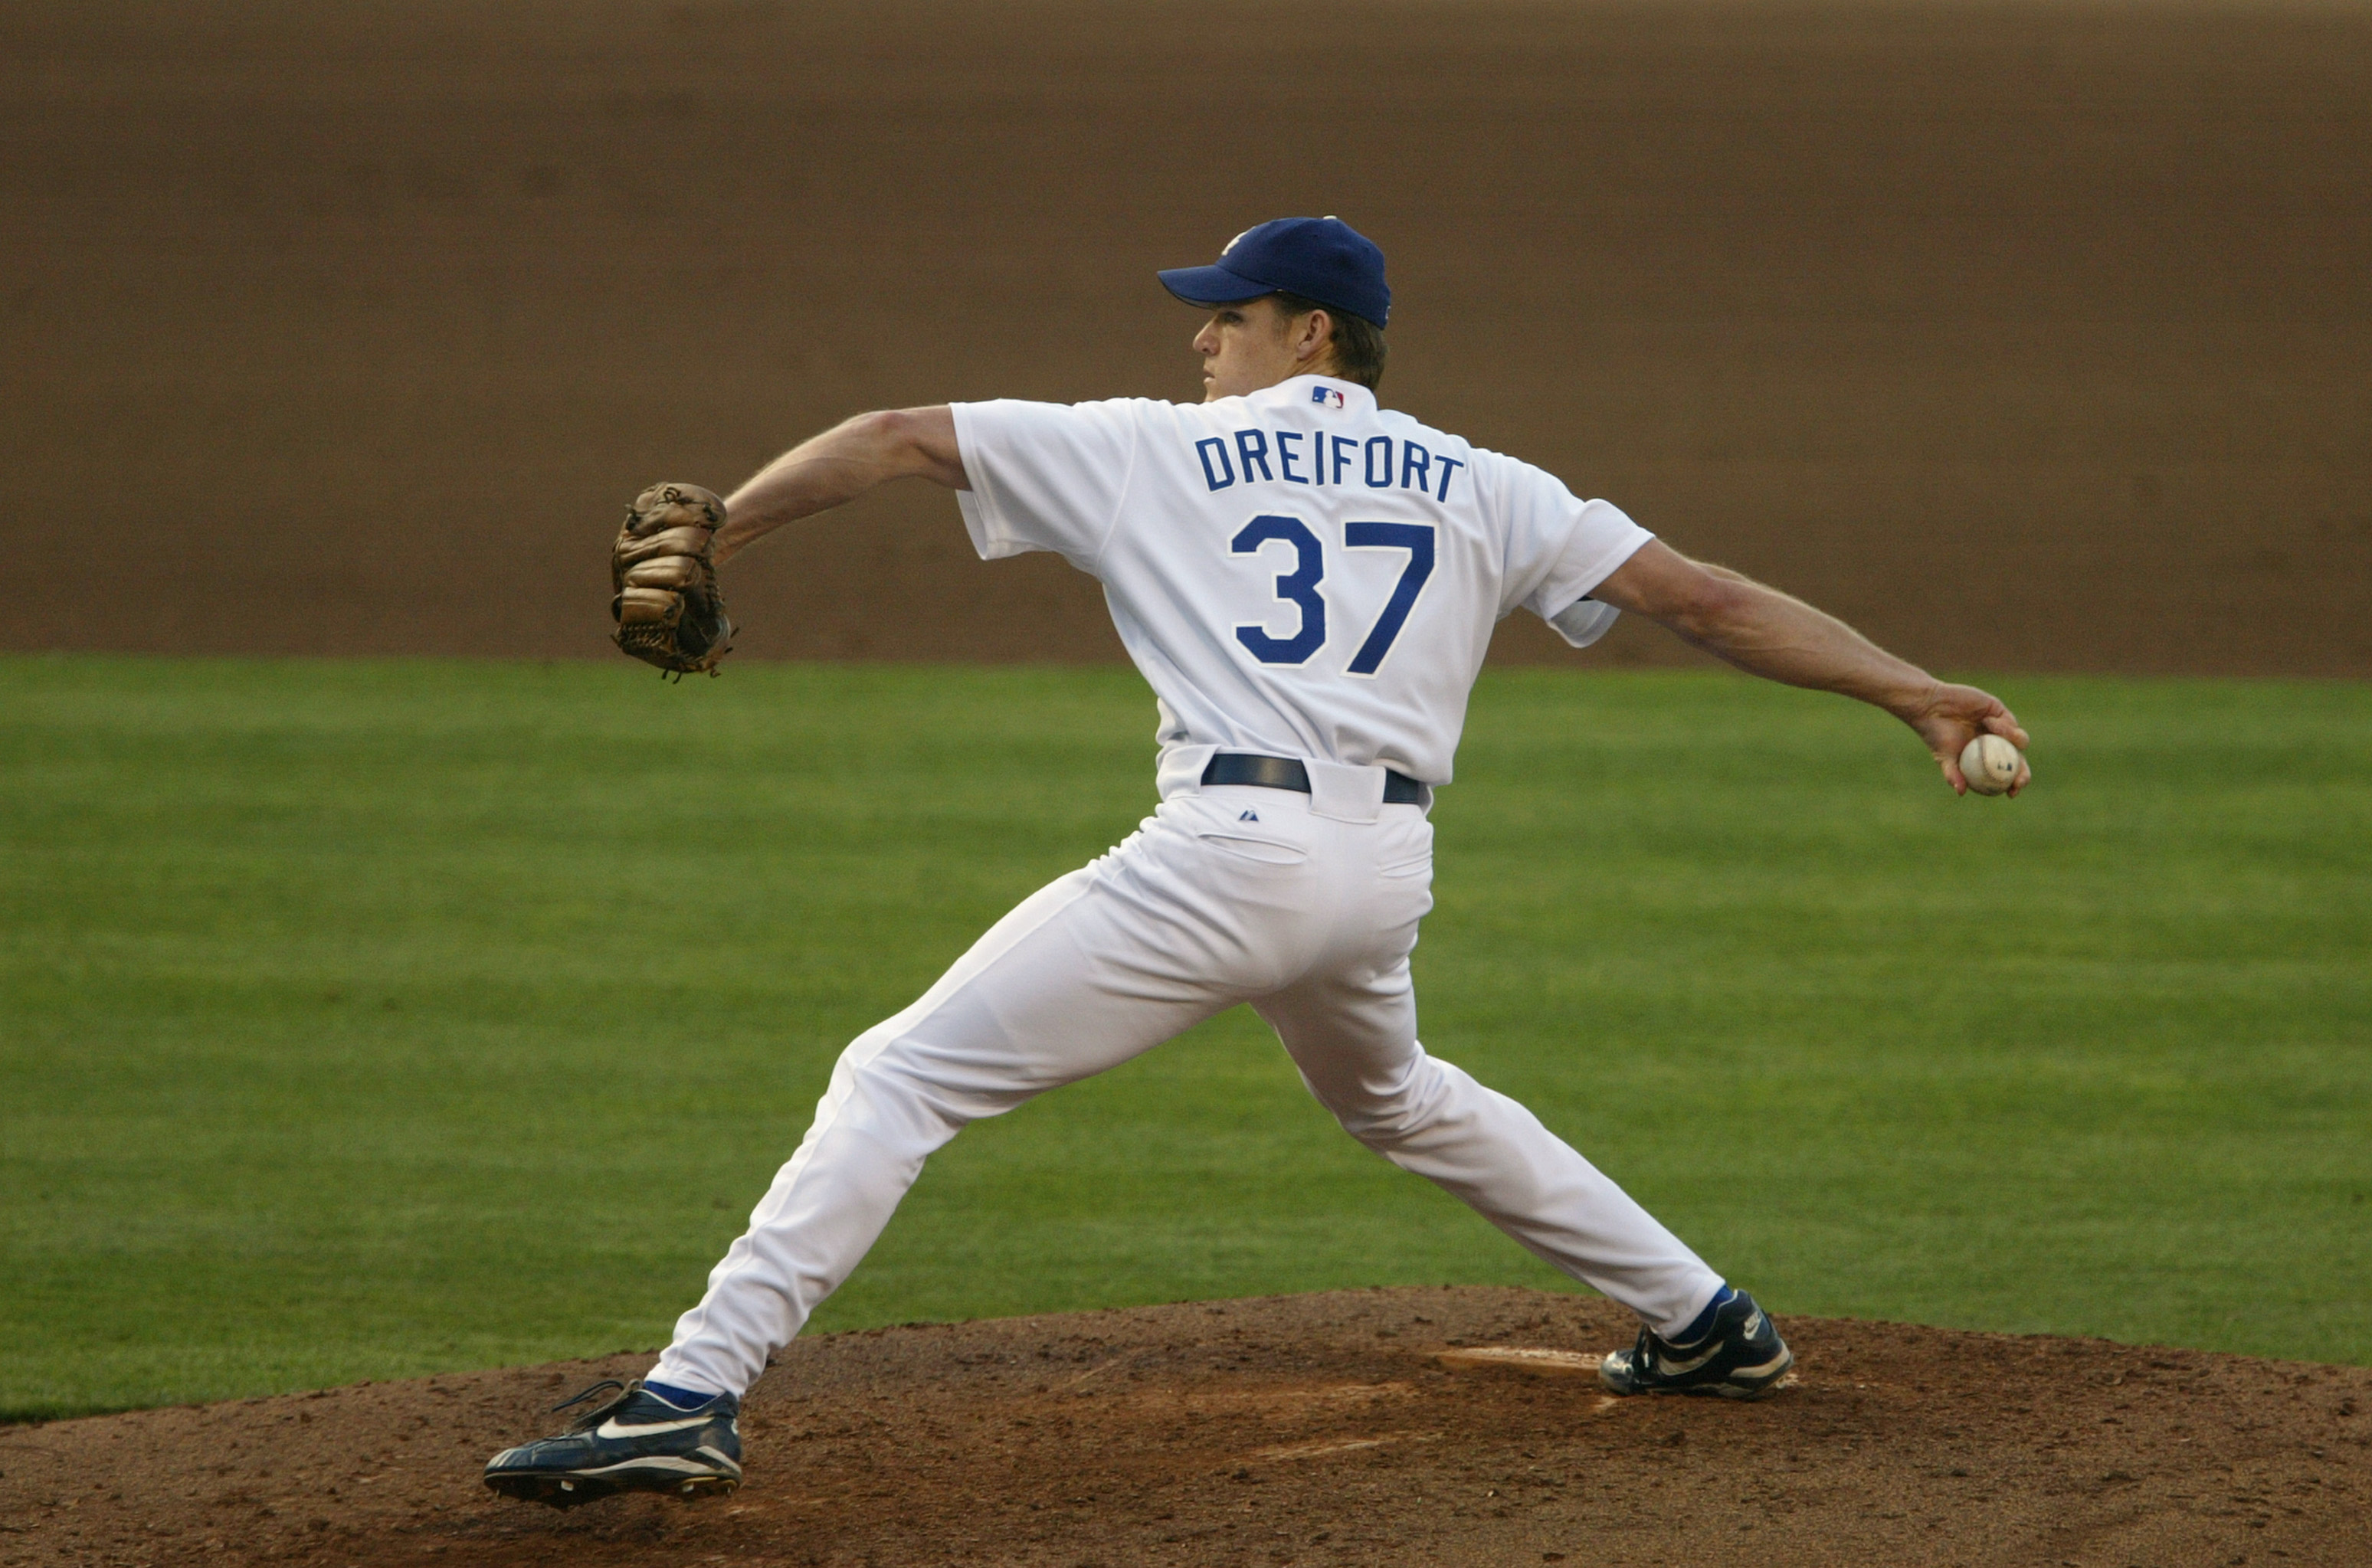 LOS ANGELES - JUNE 20:  Pitcher Darren Dreifort #37 of the Los Angeles Dodgers delivers a pitch during the game against the New York Yankees at Dodger Stadium on June 20, 2004 in Los Angeles, California.  The Dodgers won 5-4.  (Photo by Stephen Dunn/Getty